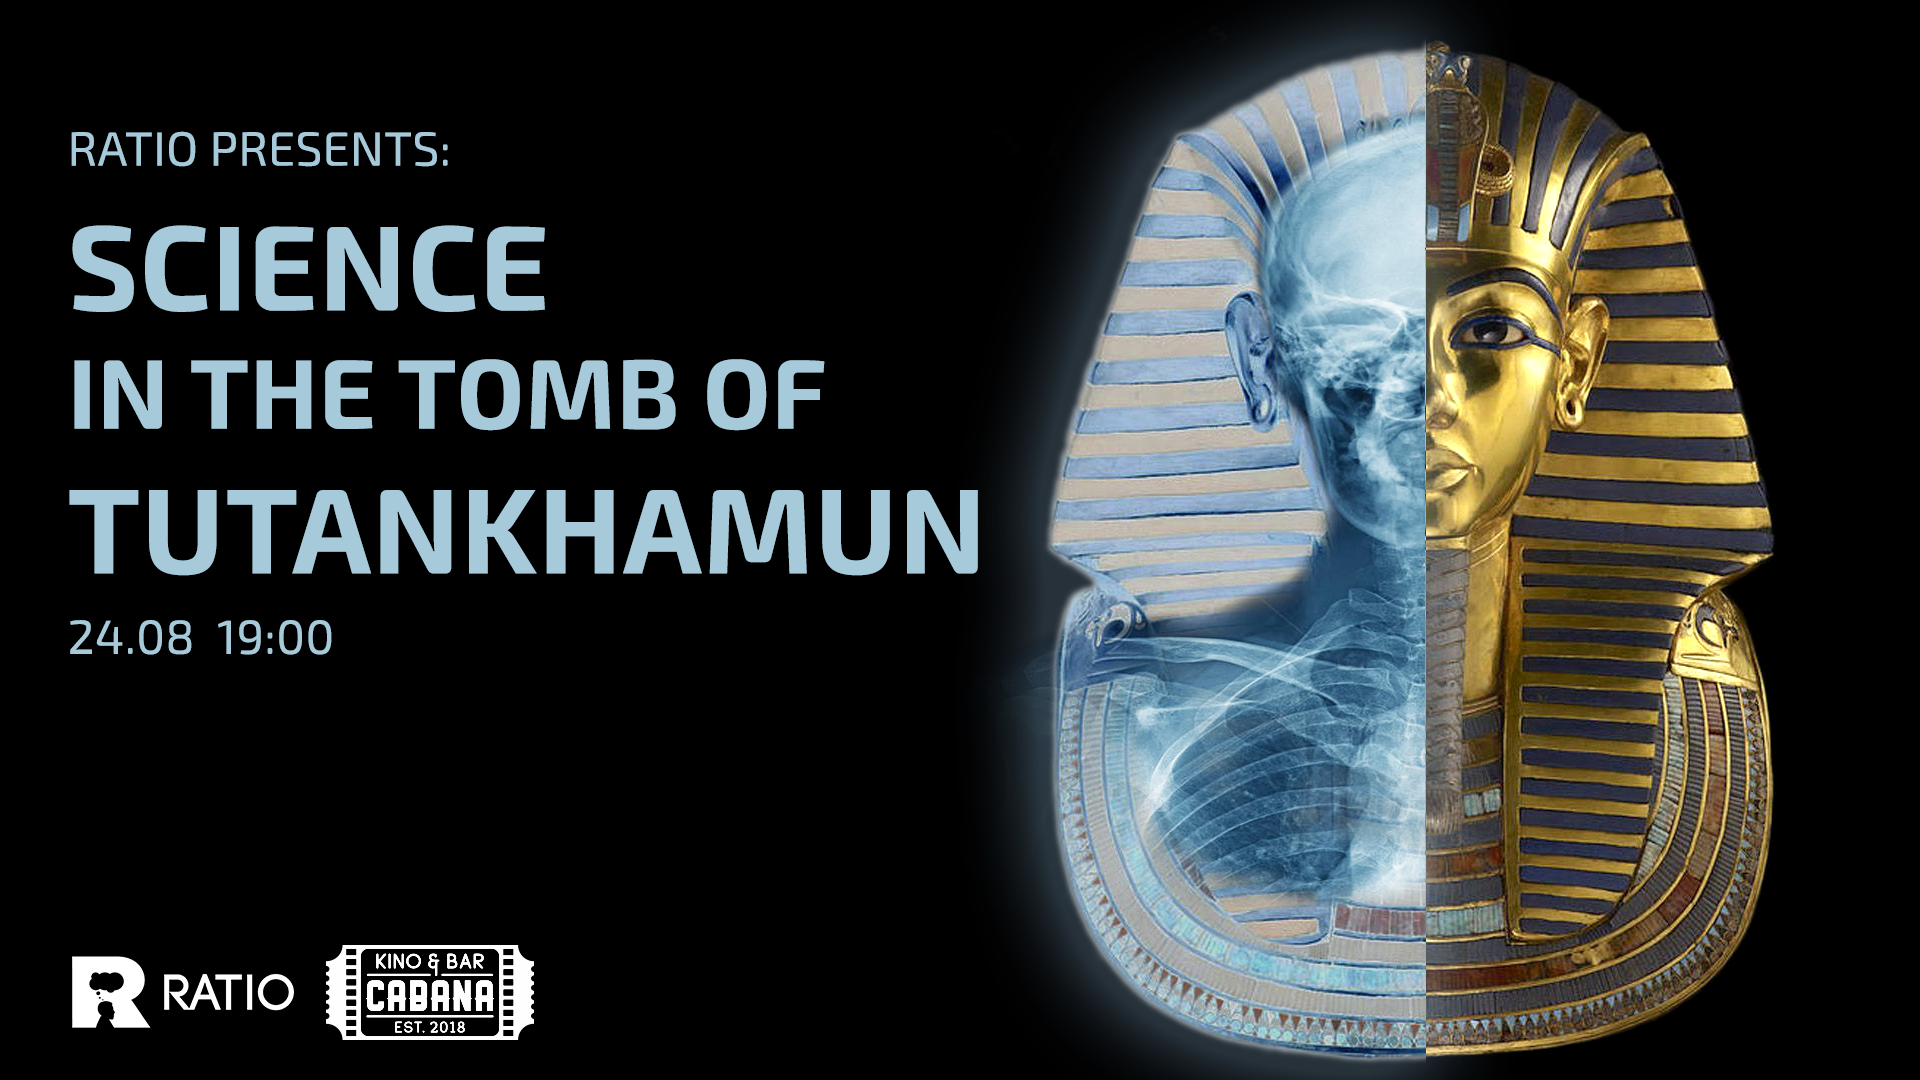 Ratio presents: Science in the Tomb of Tutankhamun